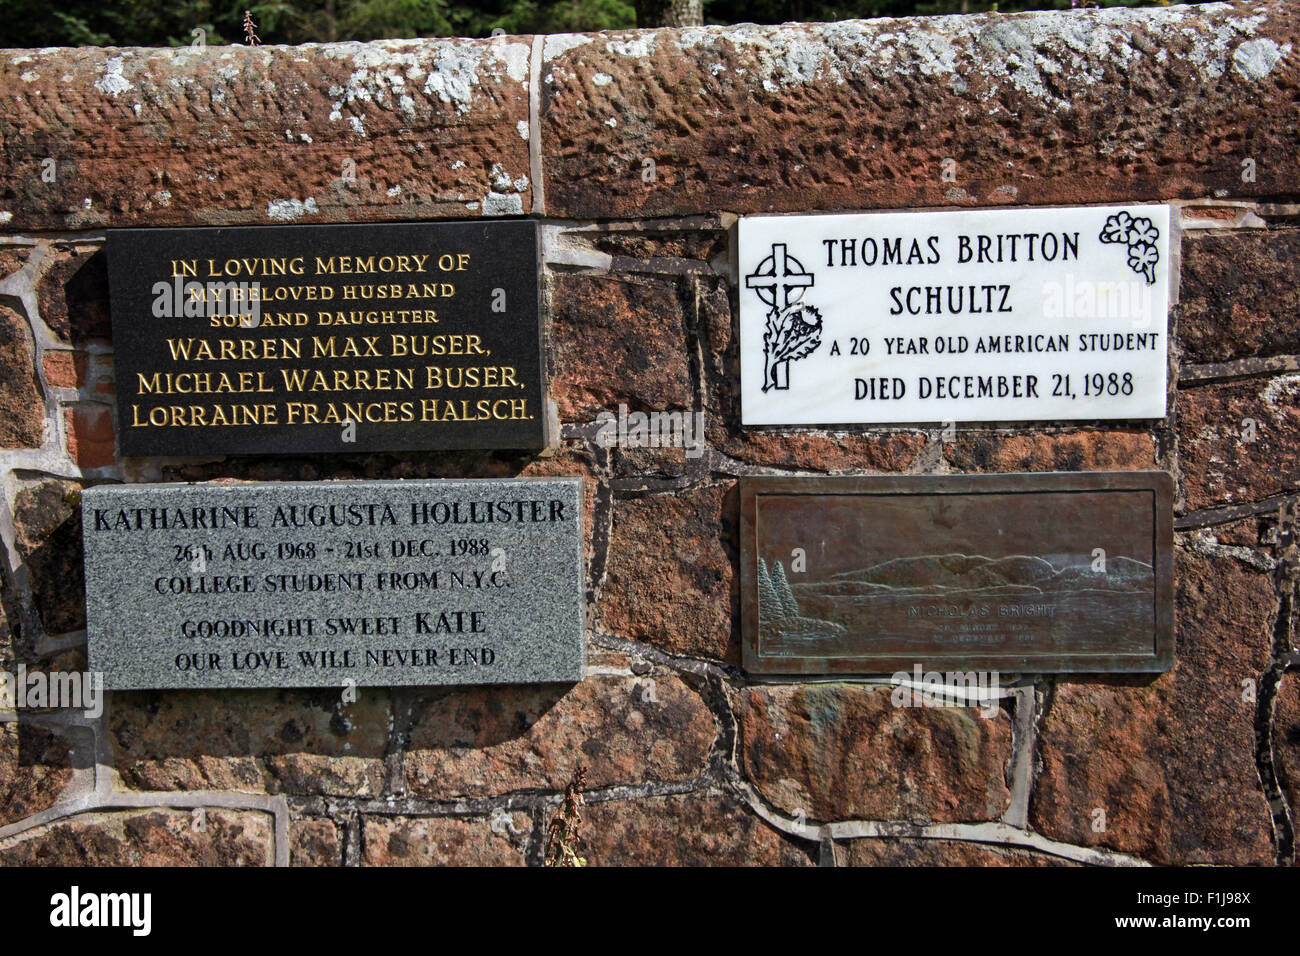 Hollister,Nicholas bright Thomas Britton Schultz Warren Max Buser Katherine Augusta,Lodge,Visitors,Centre,DLVC,Trust,Lockerbie,Memorial,Remembrance,Scotland,Victims,Pan,Am,PanAm,flight,103,bomb,bombing,terrorist,December,1988,attack,crash,dead,site,21/12/1988,270,victims,Scottish,Town,con,New York,GoTonySmith,Lodge,Visitors,Centre,DLVC,Trust,Lockerbie,Memorial,Scotland,Victims,Pan,Am,PanAm,flight,103,bomb,bombing,terrorist,December,1988,attack,crash,dead,site,21/12/1988,270,victims,Scottish,Town,conspiracy,blast,Tundergarth,Room,garden,of,Dryfesdale,Cemetery,news,Cultural,understanding,remembering,innocent,transatlantic,Frankfurt,Detroit,Libyan,Libya,Colonel Muammar Gaddafi,civil,case,compensation,terrorism,PA103,30,30years,years,Syracuse,University,SU,family,collections,Story,Archive,Archives,40,35,Timeline,saga,disaster,air,Scholars,program,programs,remembrance,Clipper Maid of the Seas,N739PA,Boeing,727,plane,aircraft,Scotland,UK,United Kingdom,GB,Great Britain,resting,place,Buy Pictures of,Buy Images Of,New York,al megrahi,30 Years